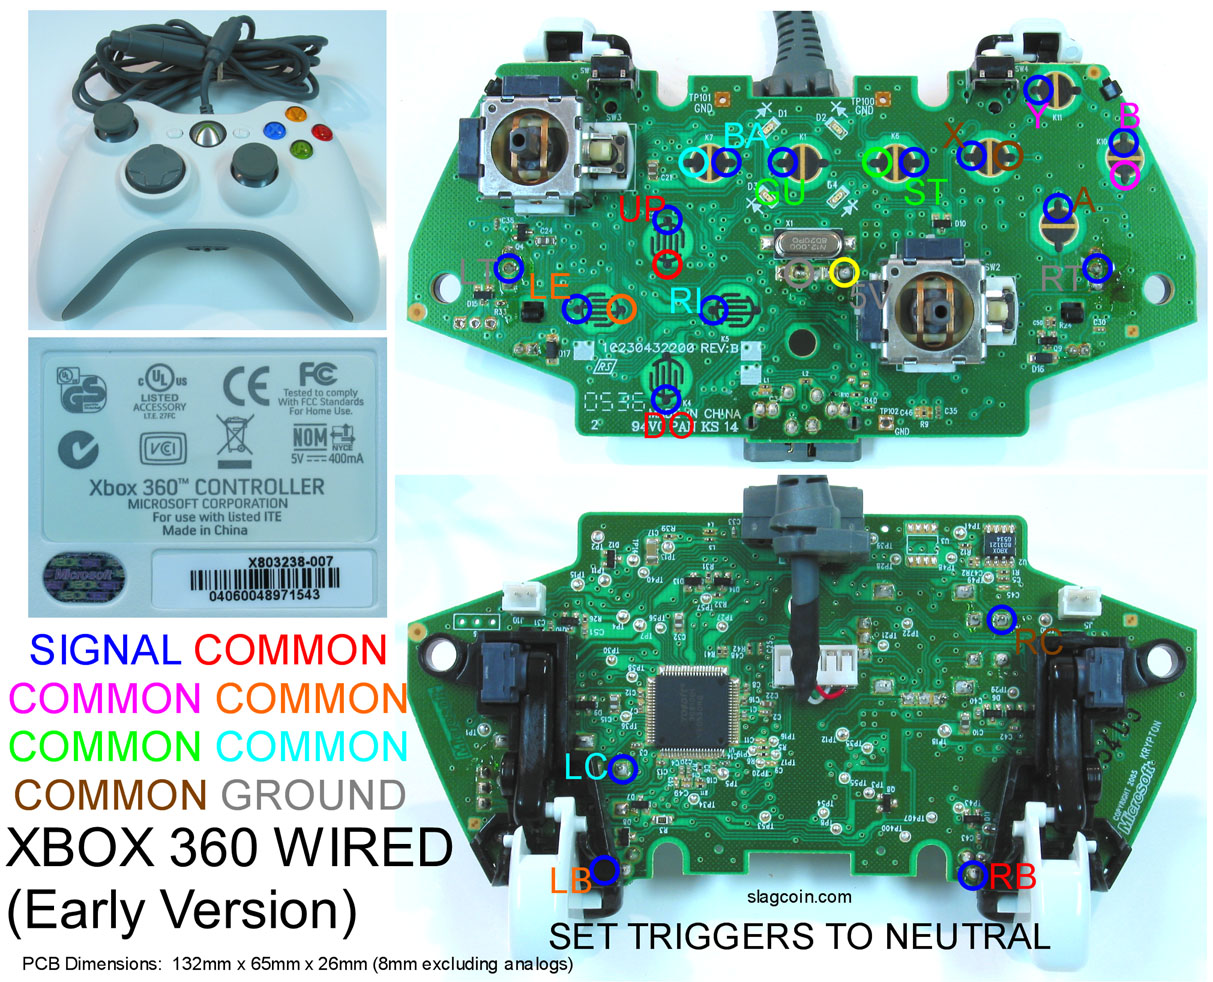 Xbox 360 Wireless Controller Wiring Diagram,Wireless.Free Download ...